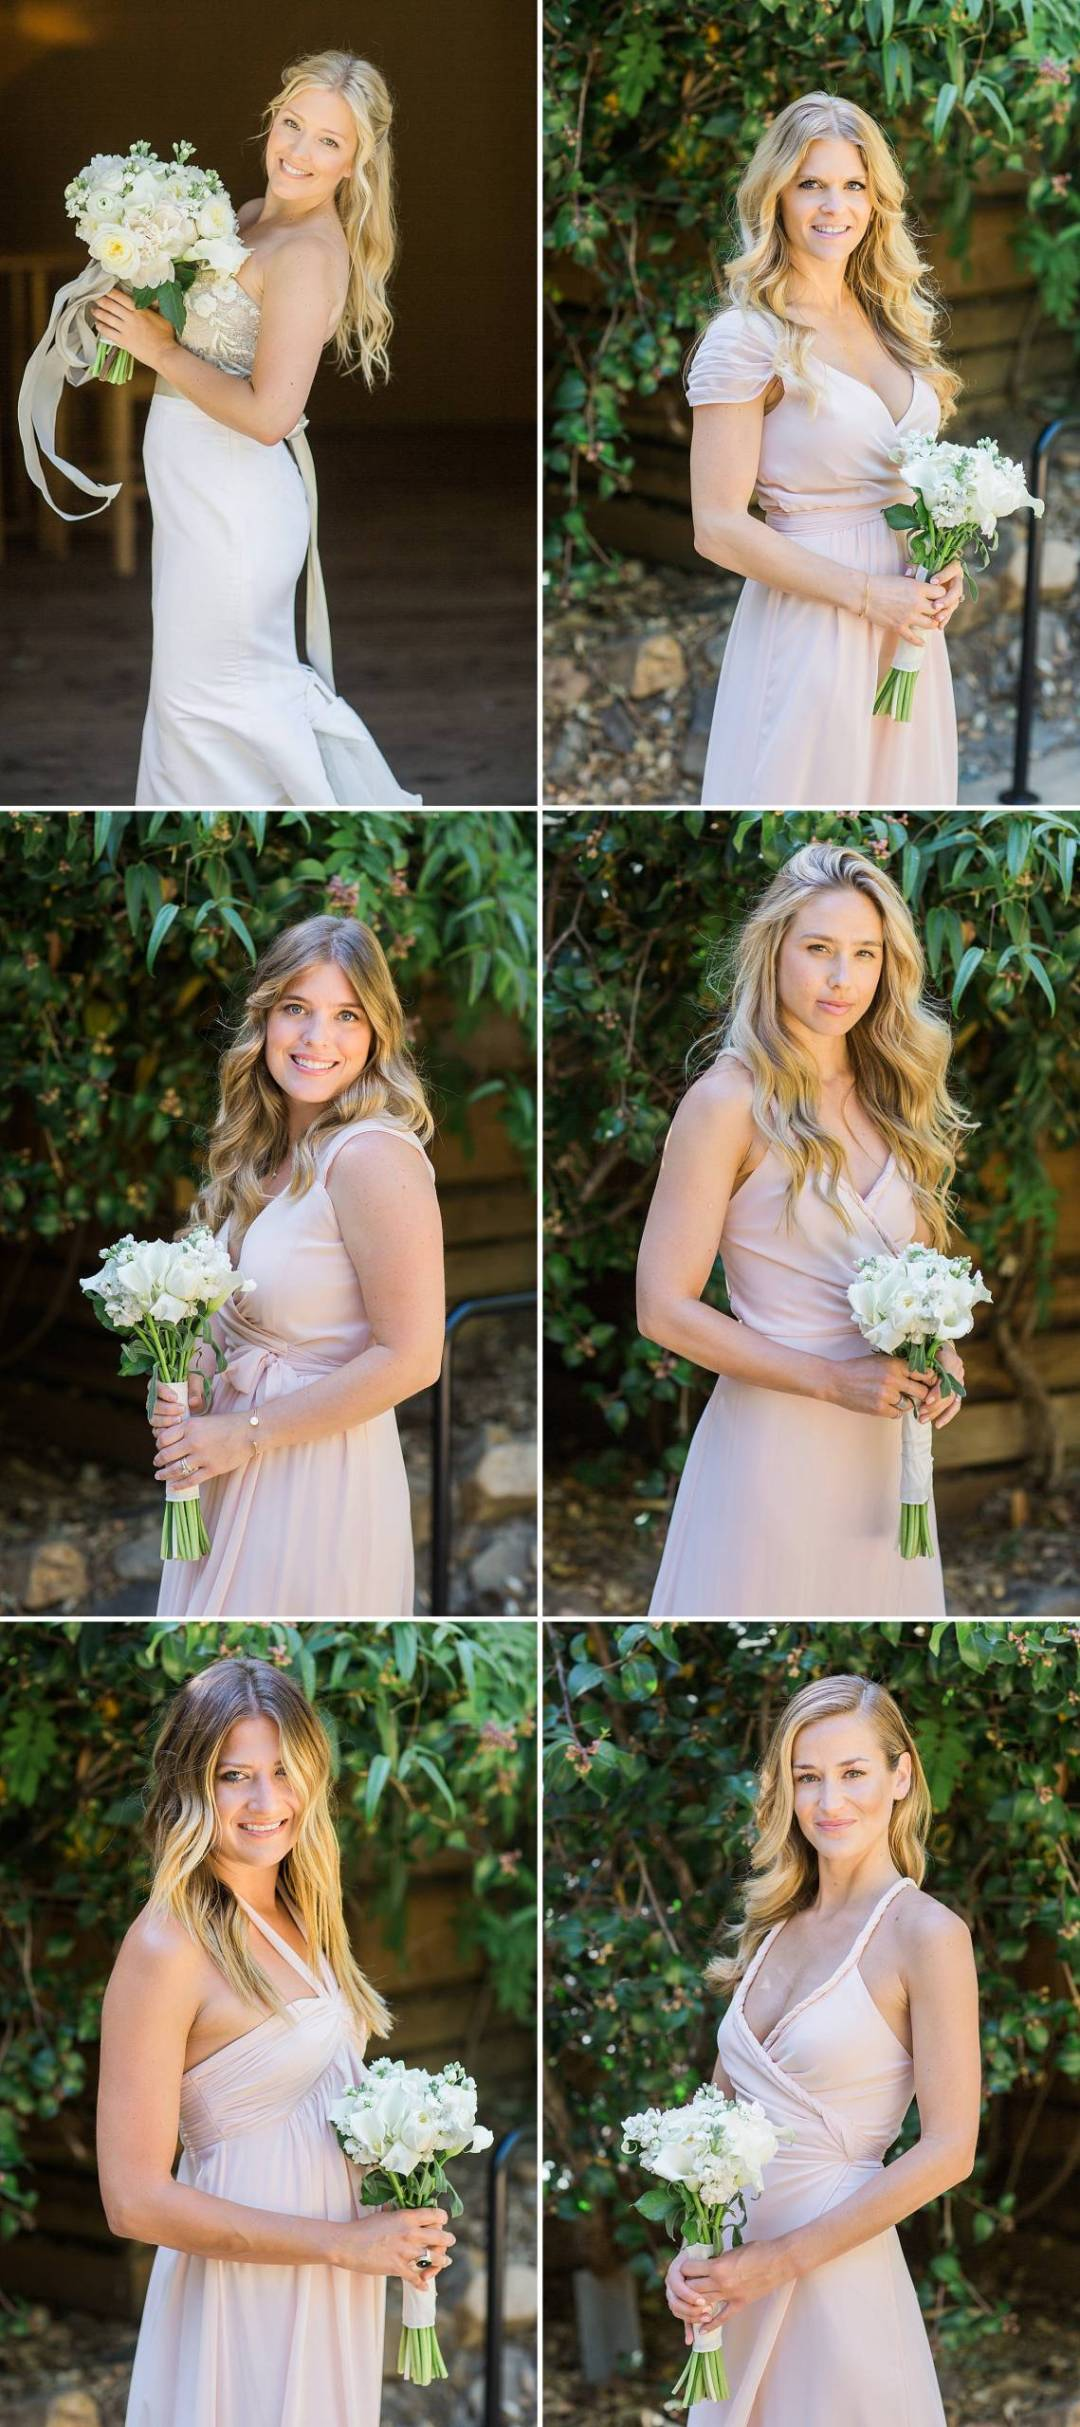 Bridesmaids Photo Calistoga Ranch Wedding Photos